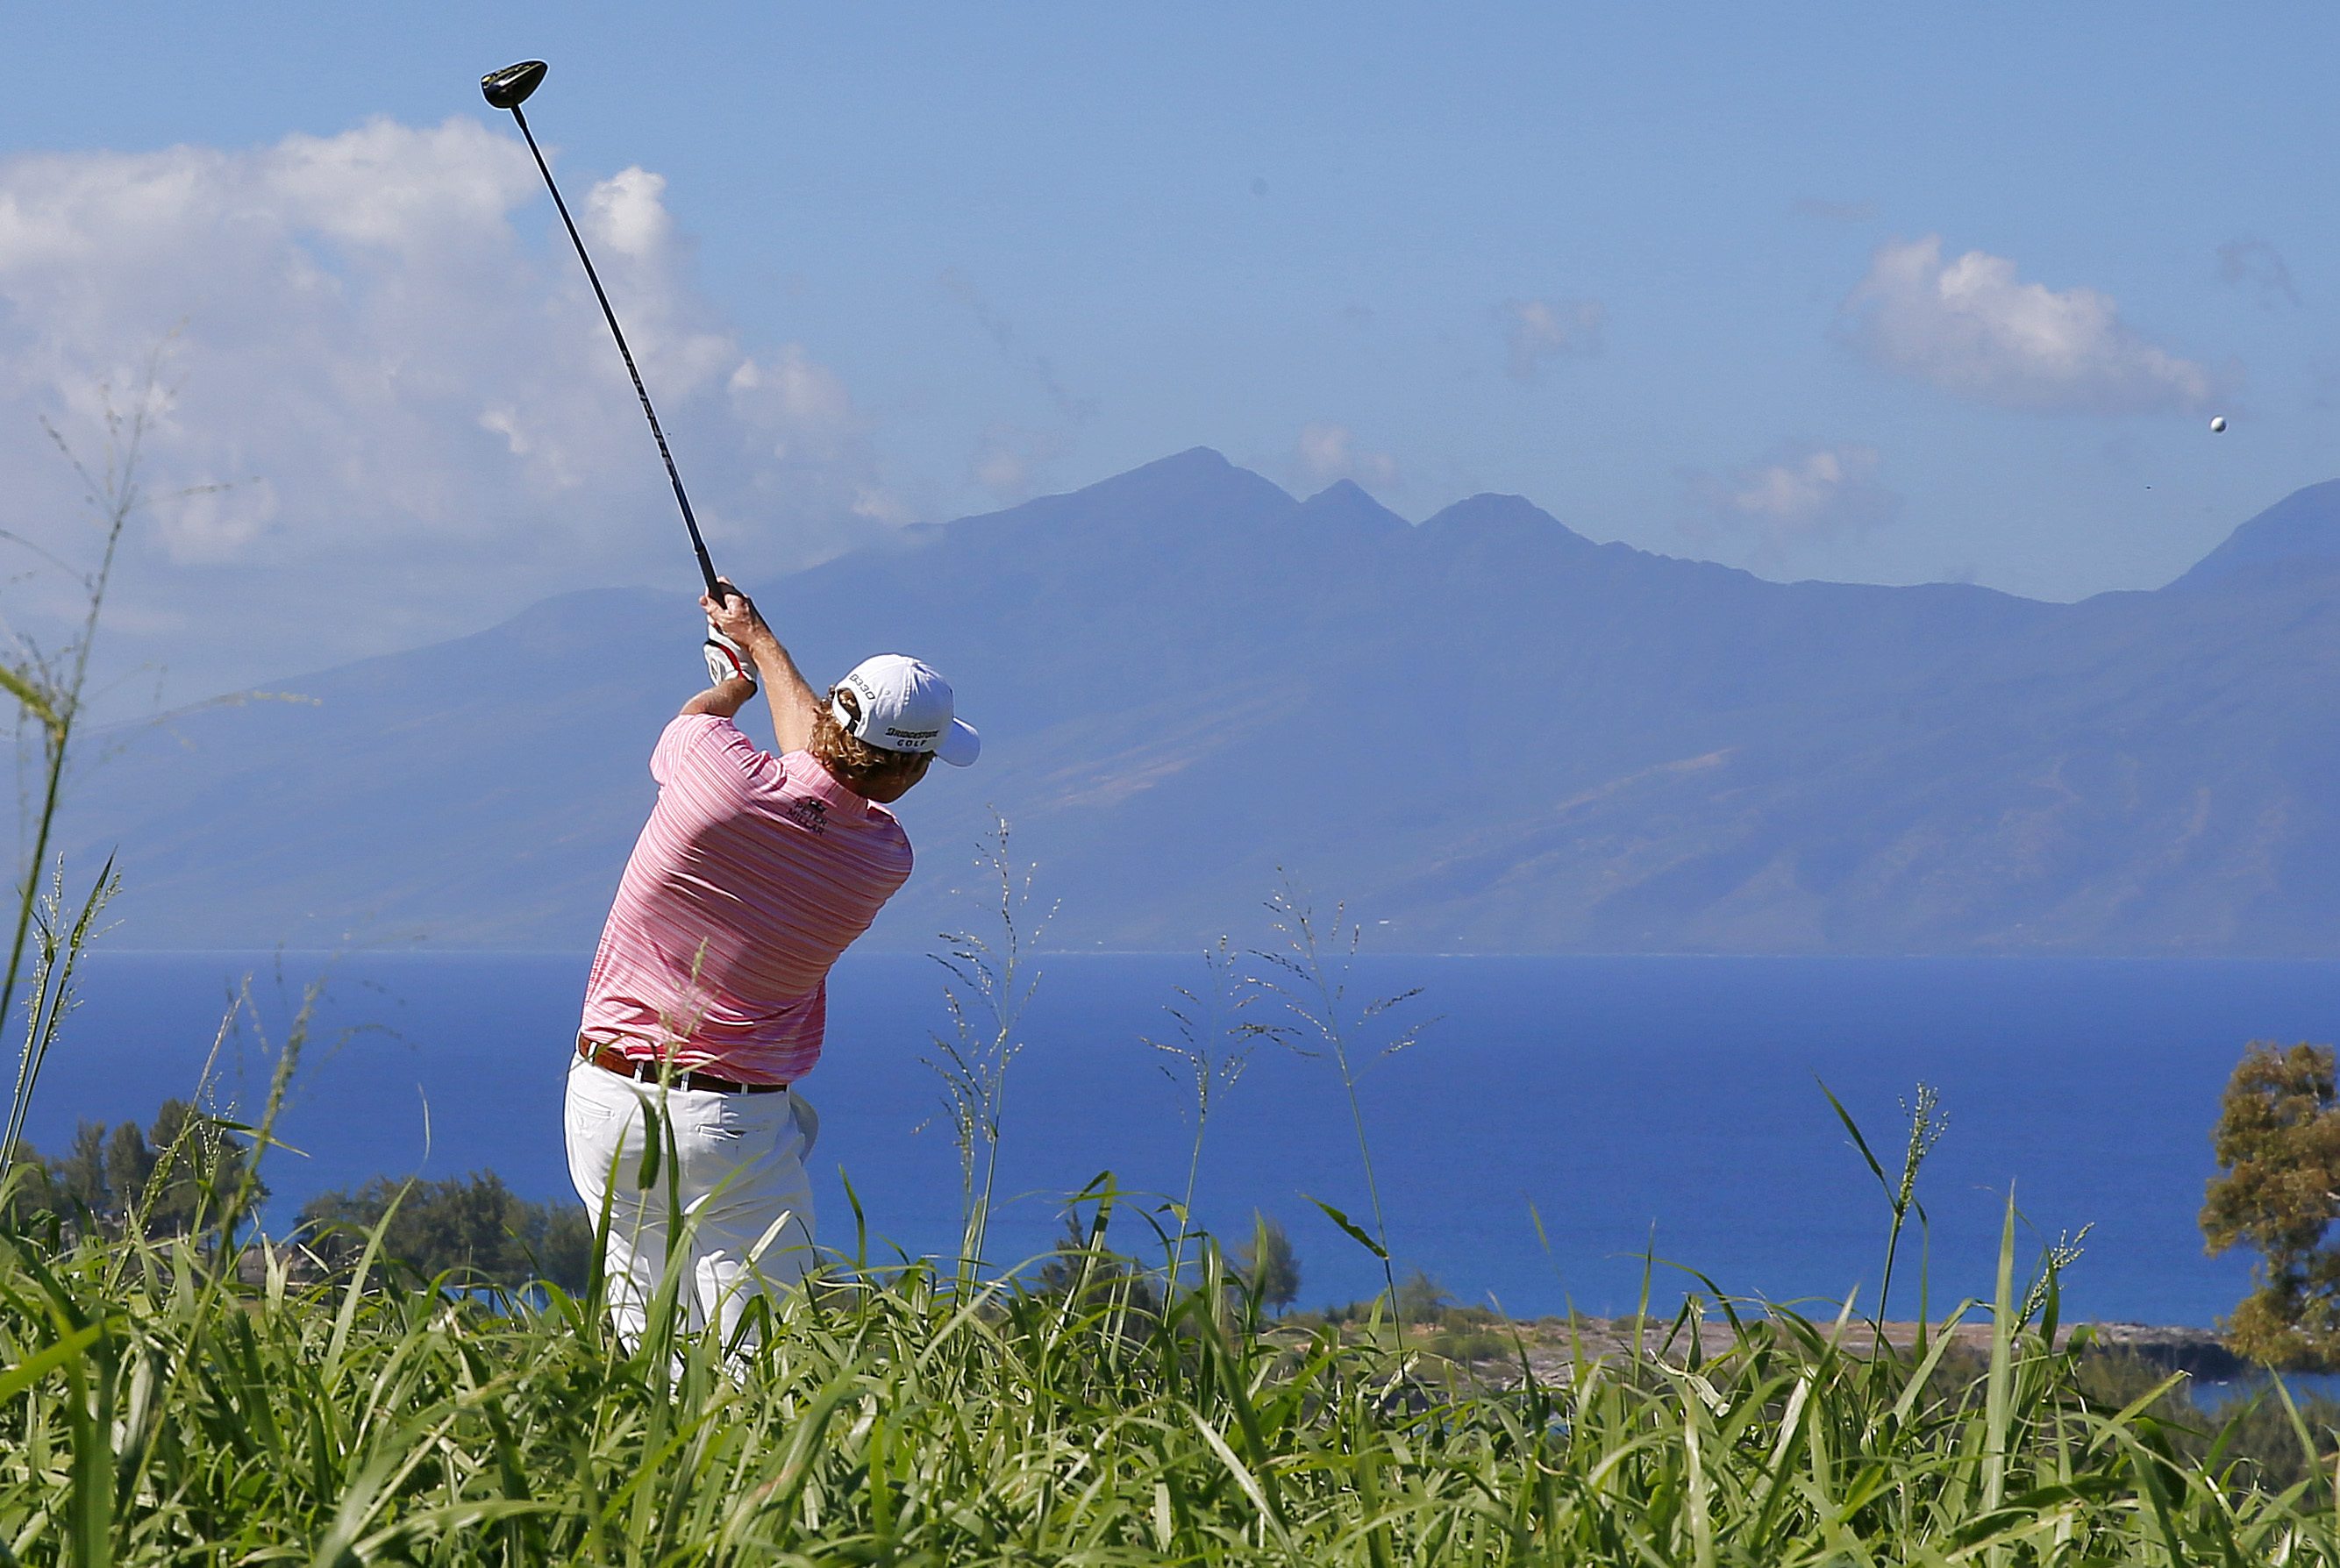 Brandt Snedeker hits from the seventh tee during the first round of the Tournament of Champions golf event Thursday, Jan. 7, 2016, at Kapalua Plantation Course in Kapalua, Hawaii. (AP Photo/Matt York)